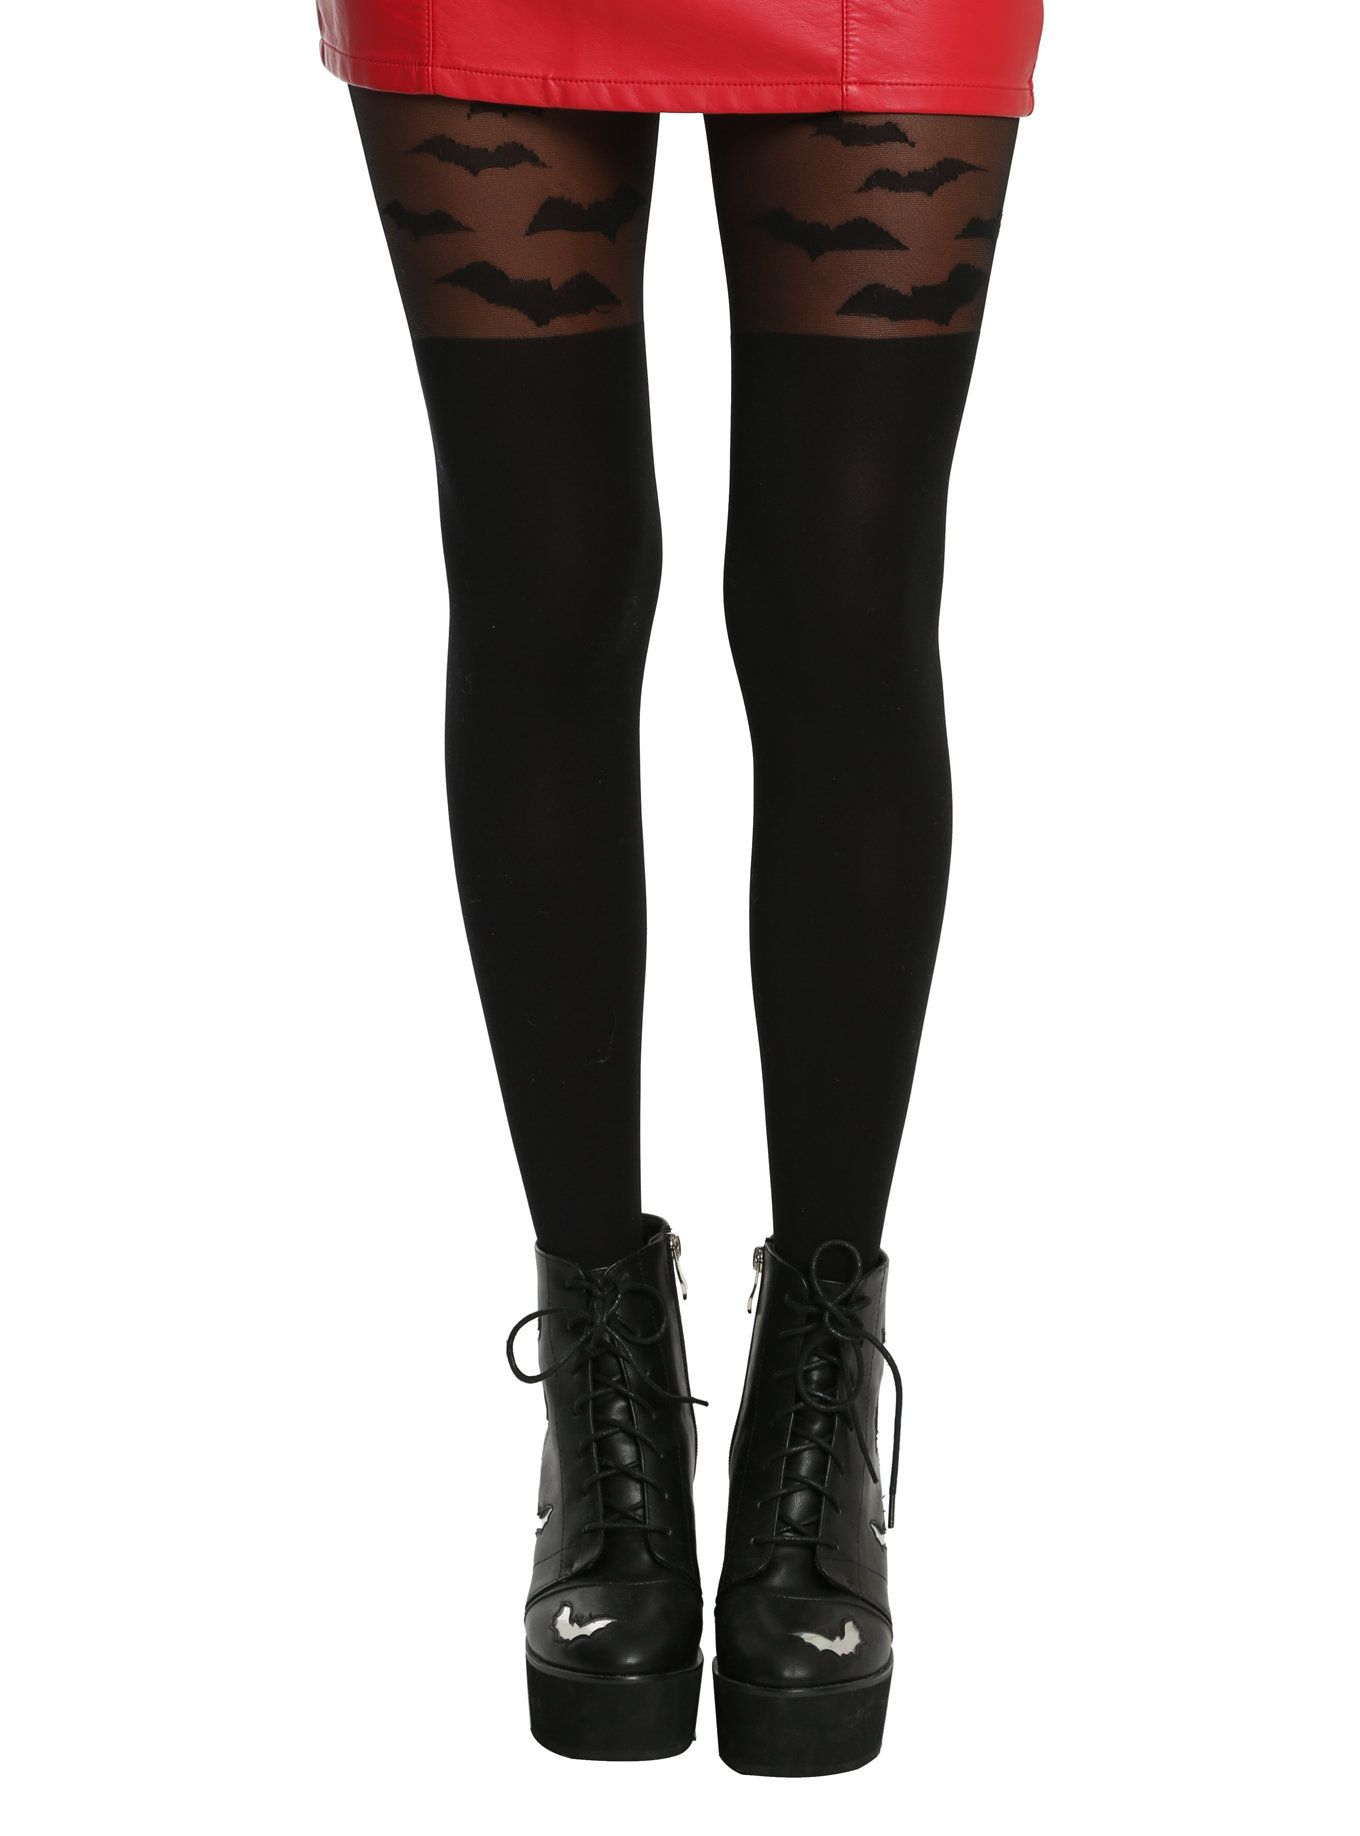 206eea786 These sheer black tights have flying bats coming from the opaque faux thigh  highs. We know they re Halloween themed